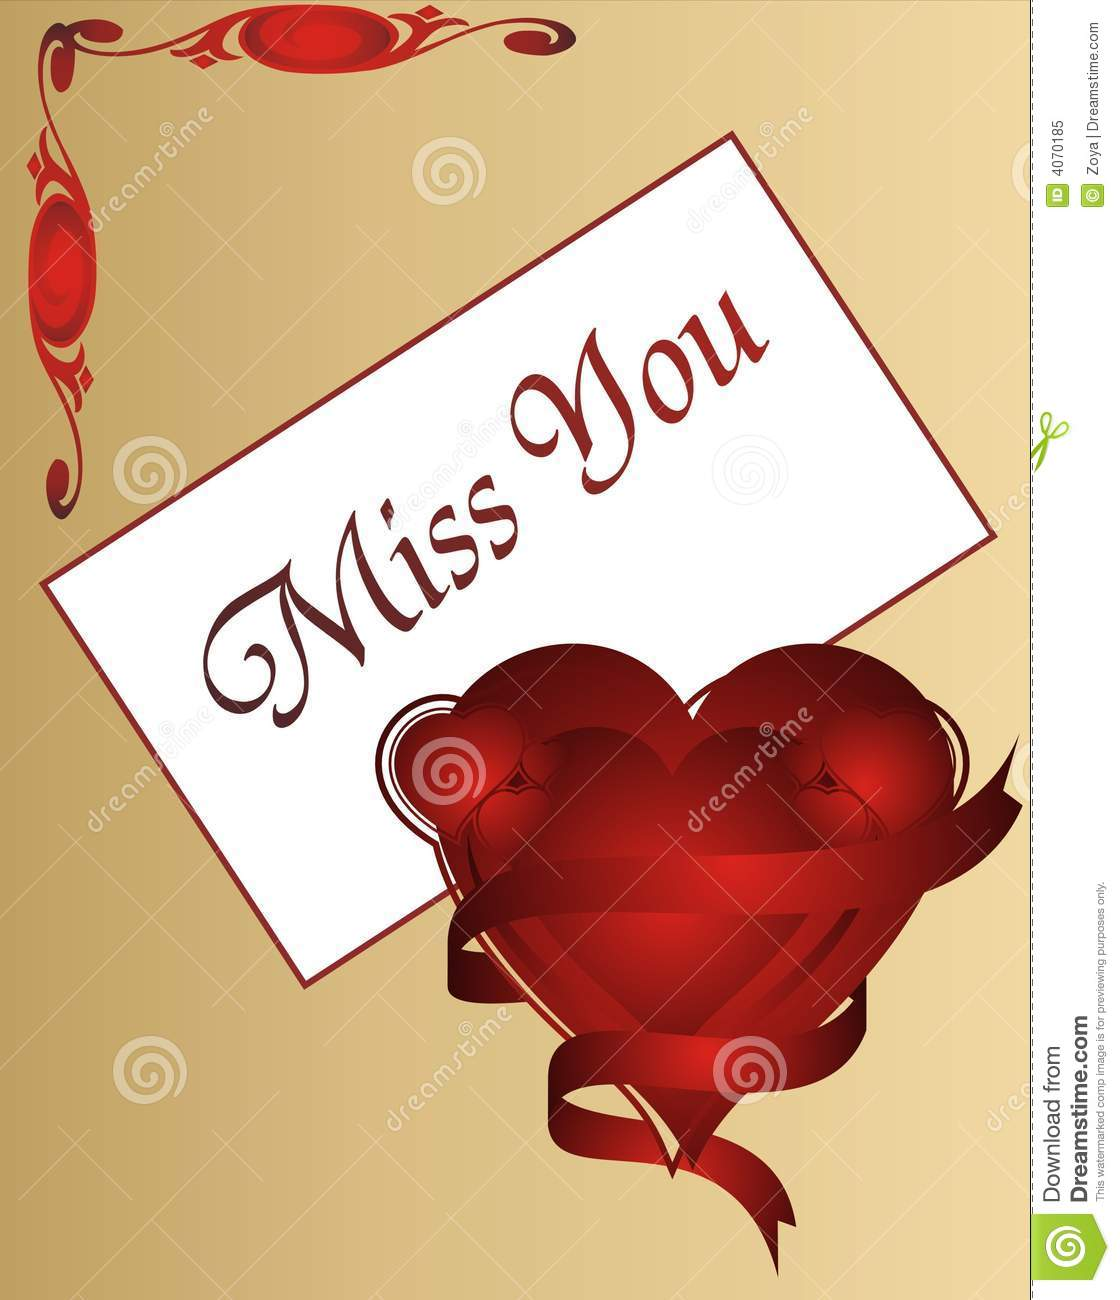 Miss you love card illustration stock illustration download comp m4hsunfo